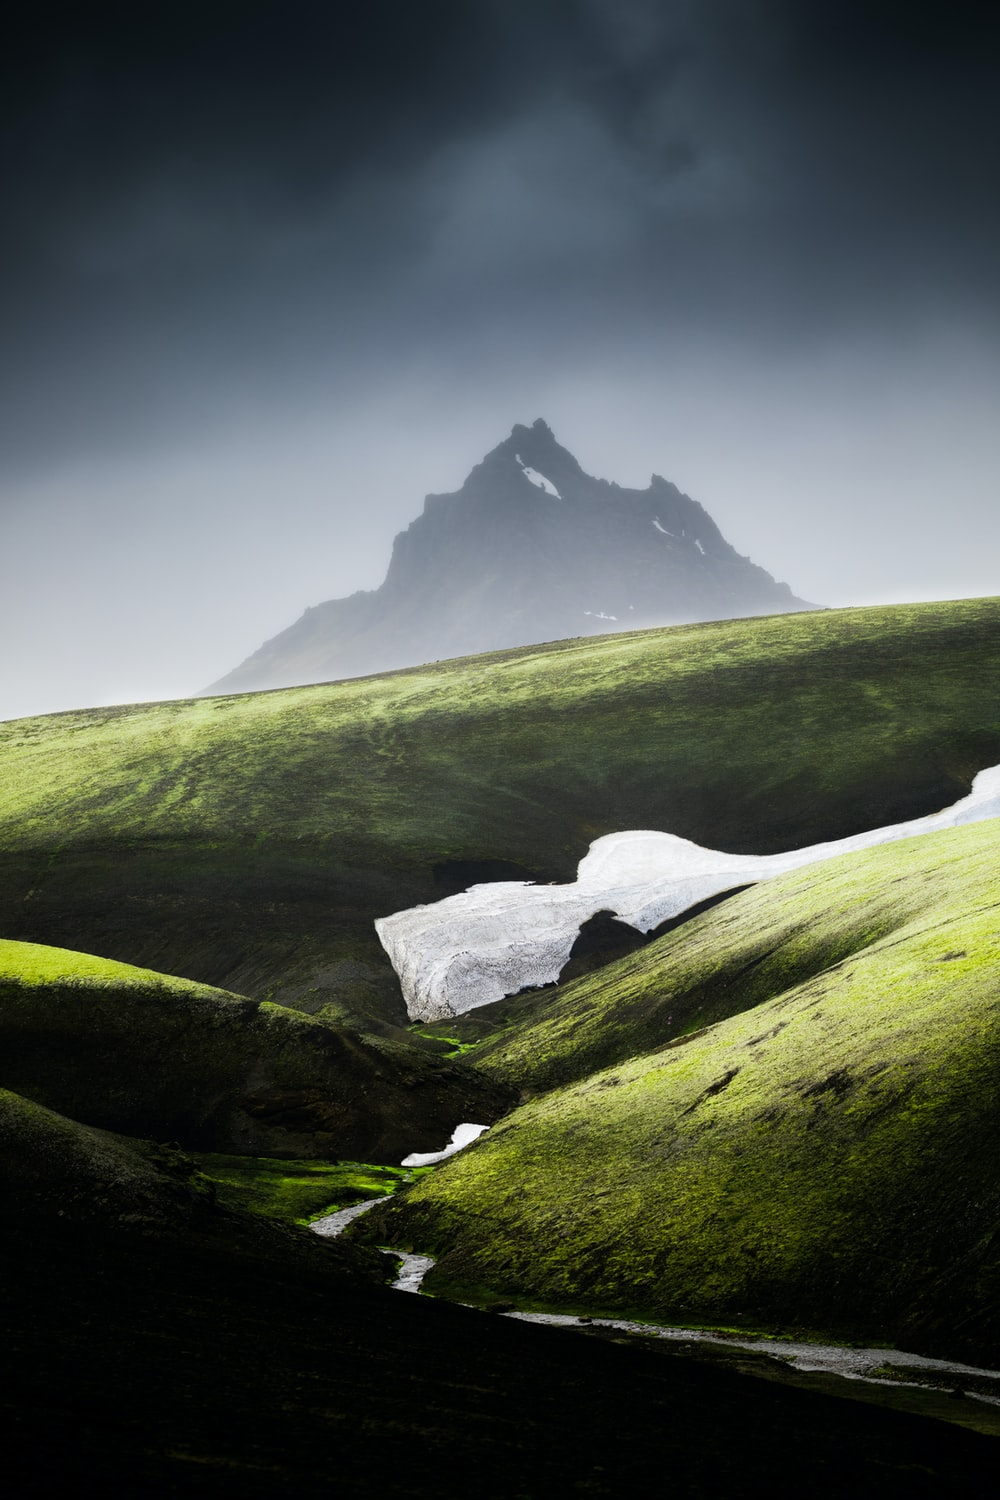 green grass field and mountain